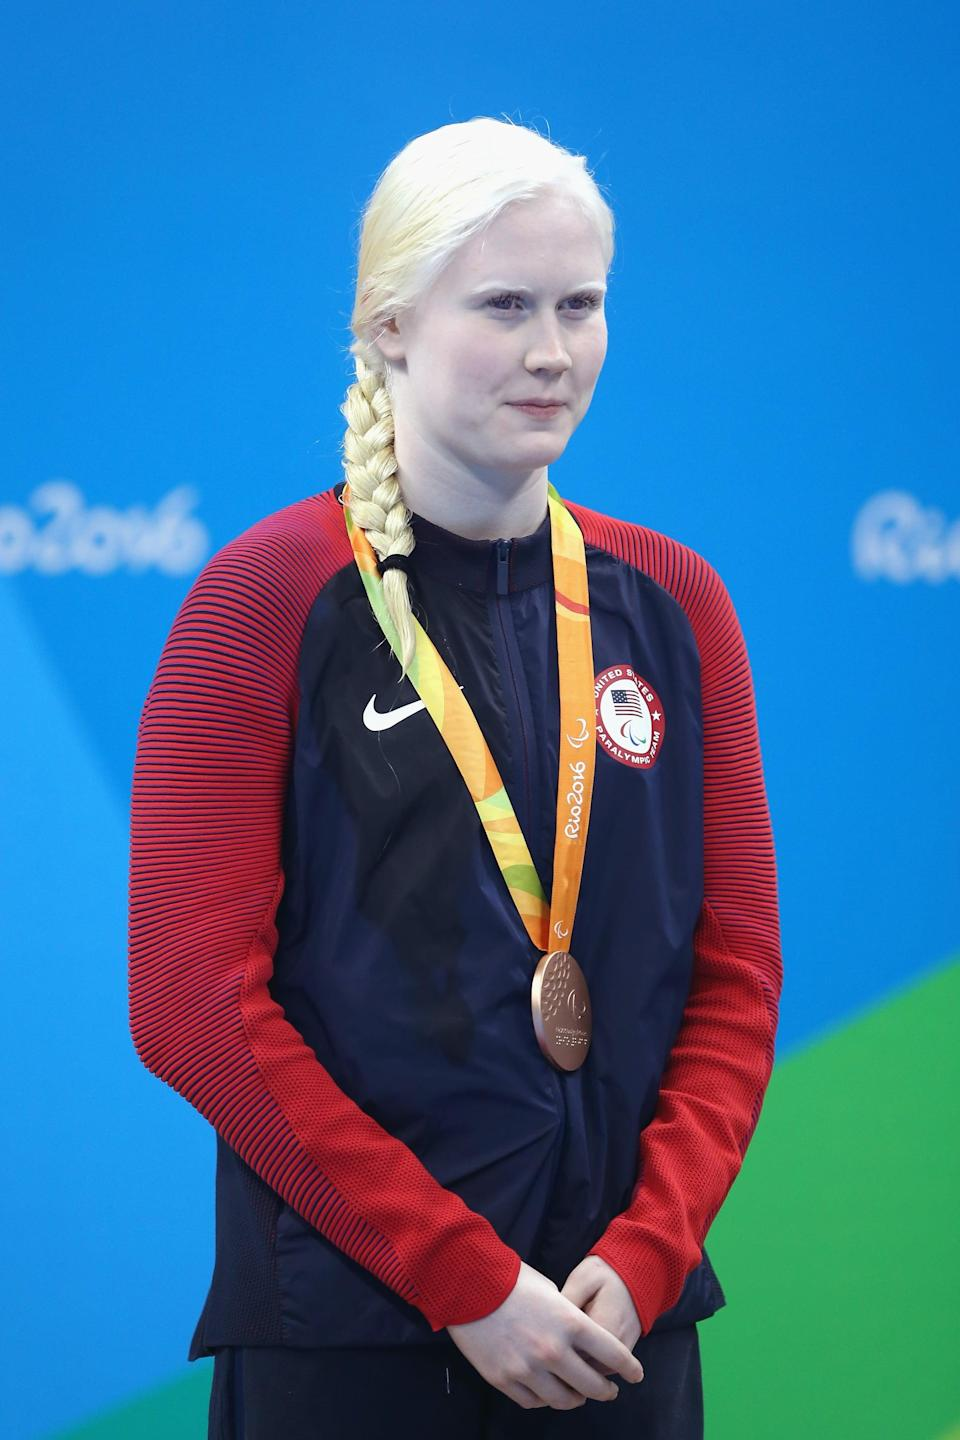 """<p>At <a href=""""http://olympics.com/tokyo-2020/paralympic-games/en/results/swimming/athlete-profile-n1690669-young-colleen.htm"""" class=""""link rapid-noclick-resp"""" rel=""""nofollow noopener"""" target=""""_blank"""" data-ylk=""""slk:14 years old and 64 days"""">14 years old and 64 days</a> in 2012, Young was indeed the youngest Paralympian to represent Team USA in London. While she didn't medal in London, Young went on to compete in the SB13 women's 100m Breaststroke at the 2016 Rio Games and earn a bronze medal. Tokyo is her third Paralympic Games.</p>"""